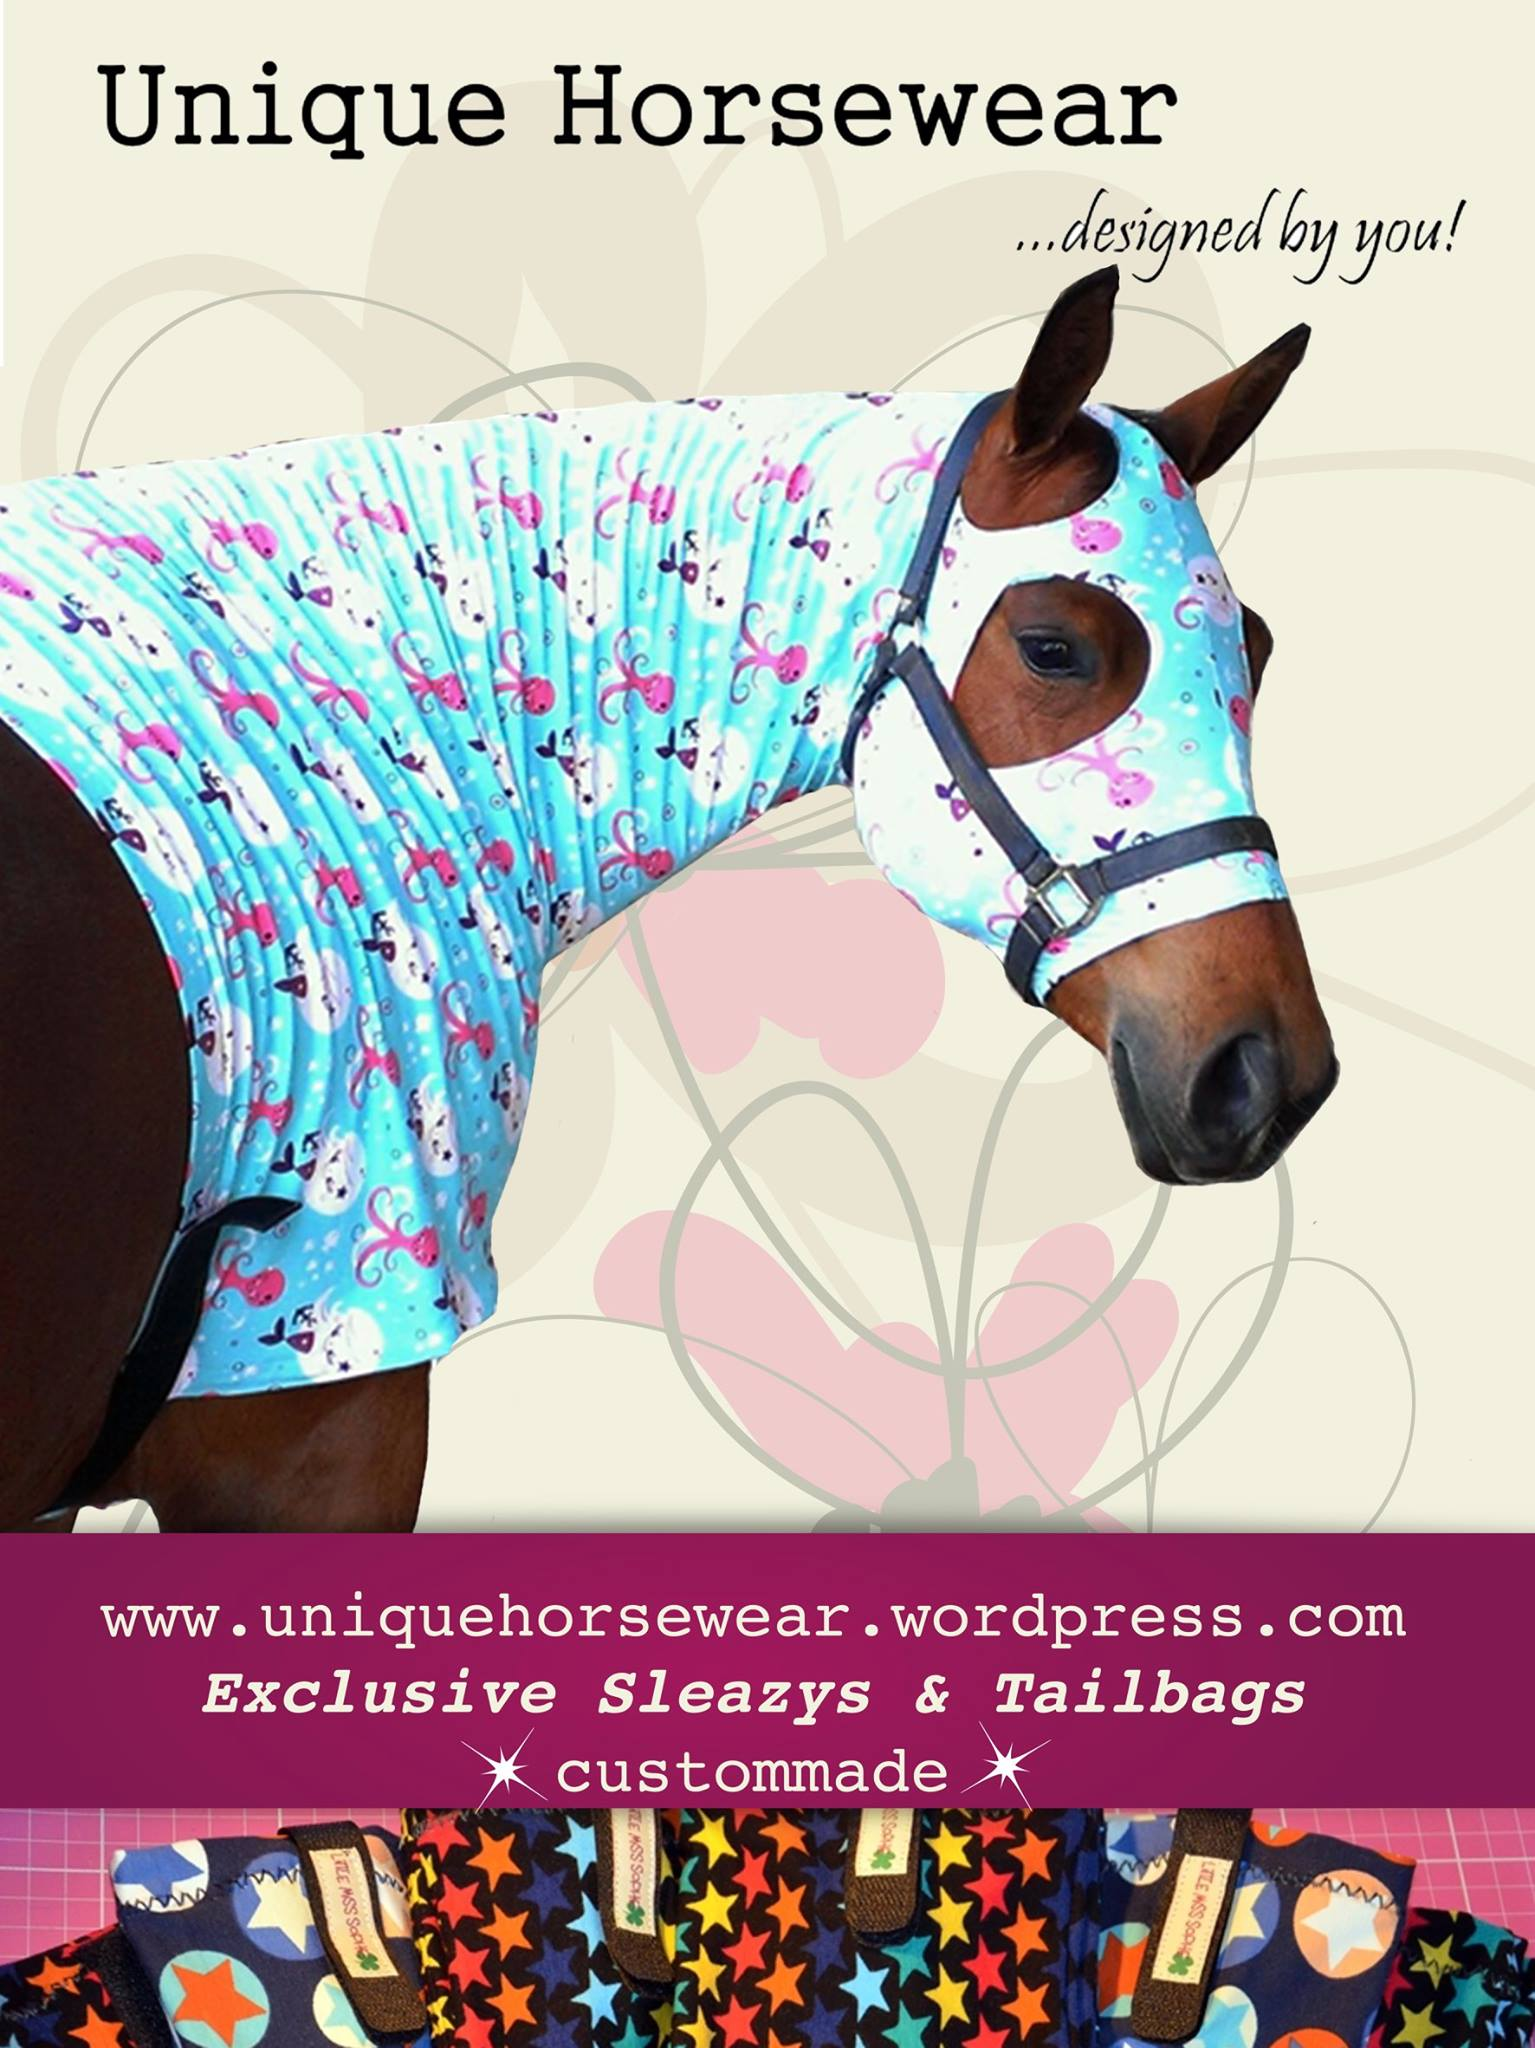 Sleezy von Unique Horseware - (Foto: Unique Horseware)